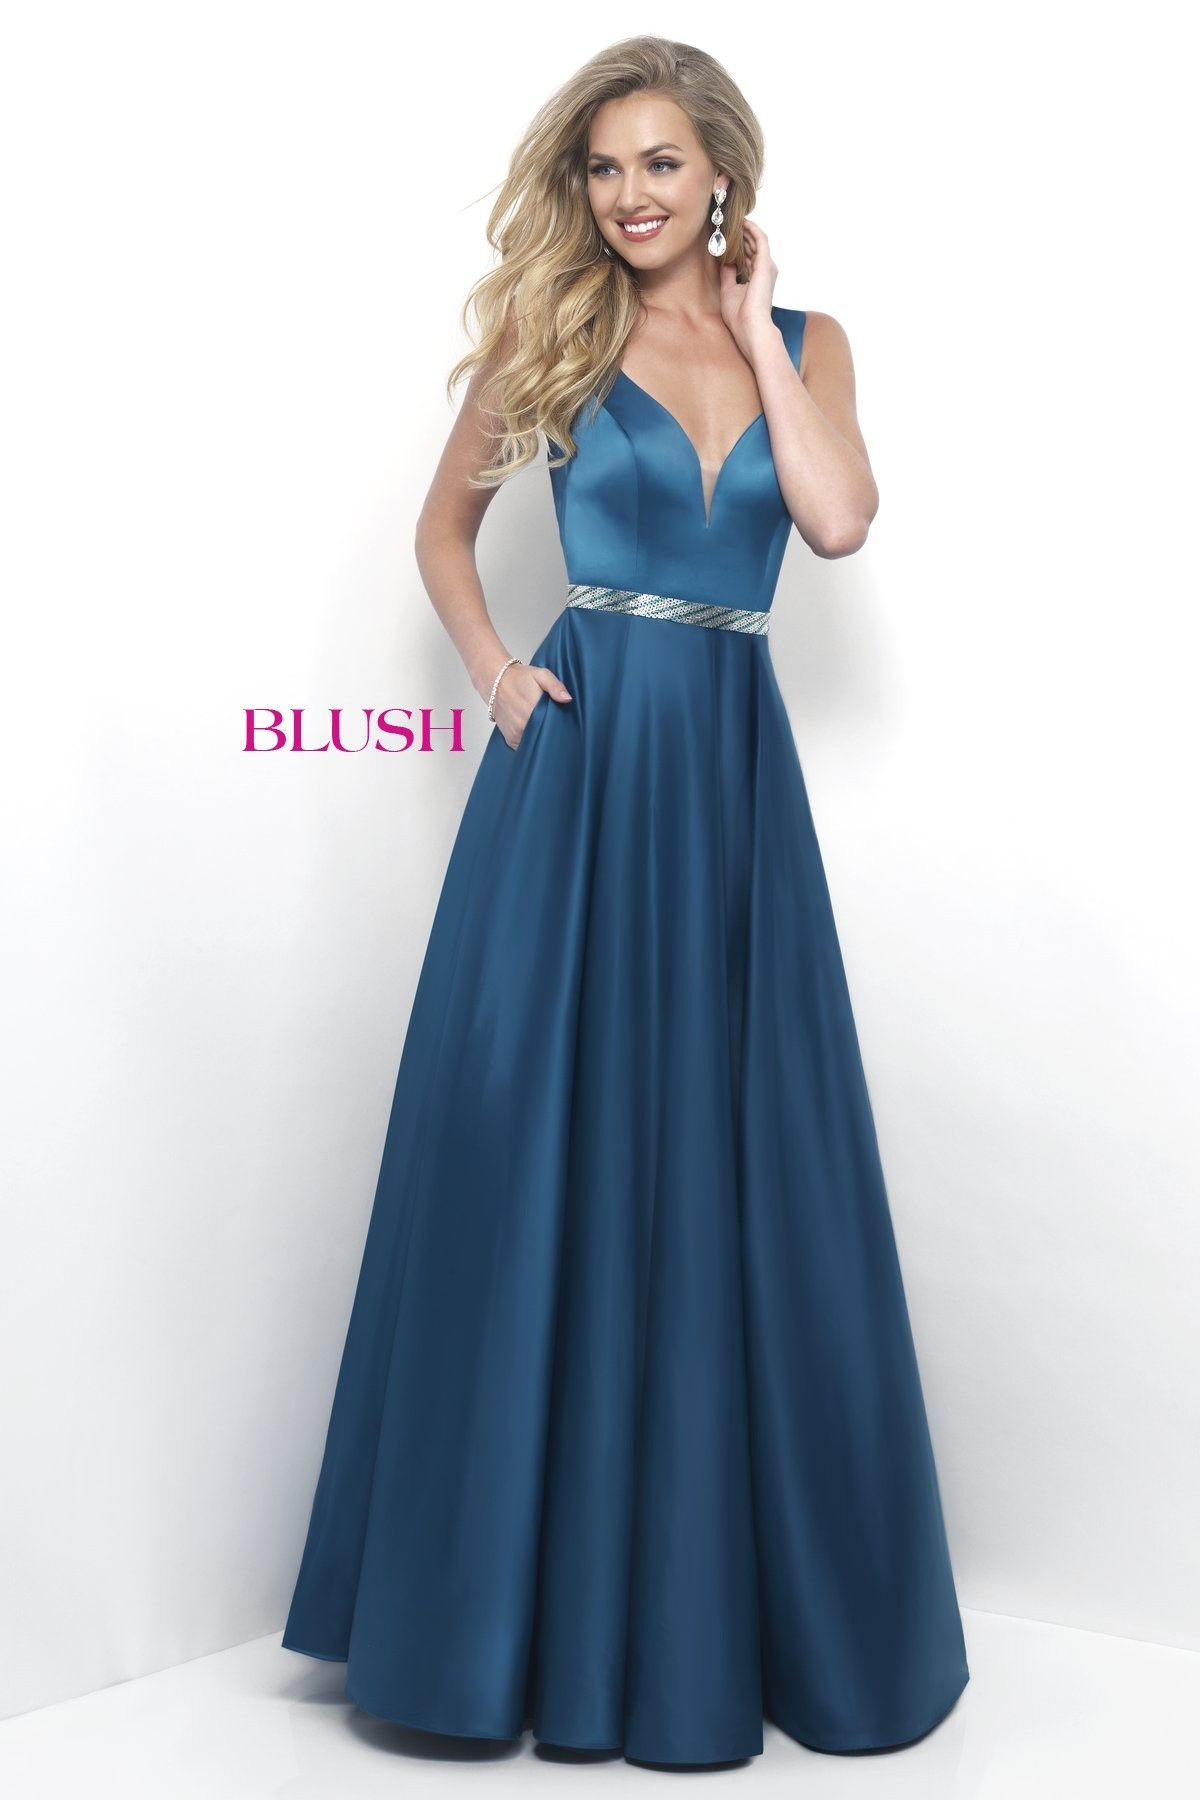 Show off in this brilliant teal ball gowncheck it out at rsvp prom